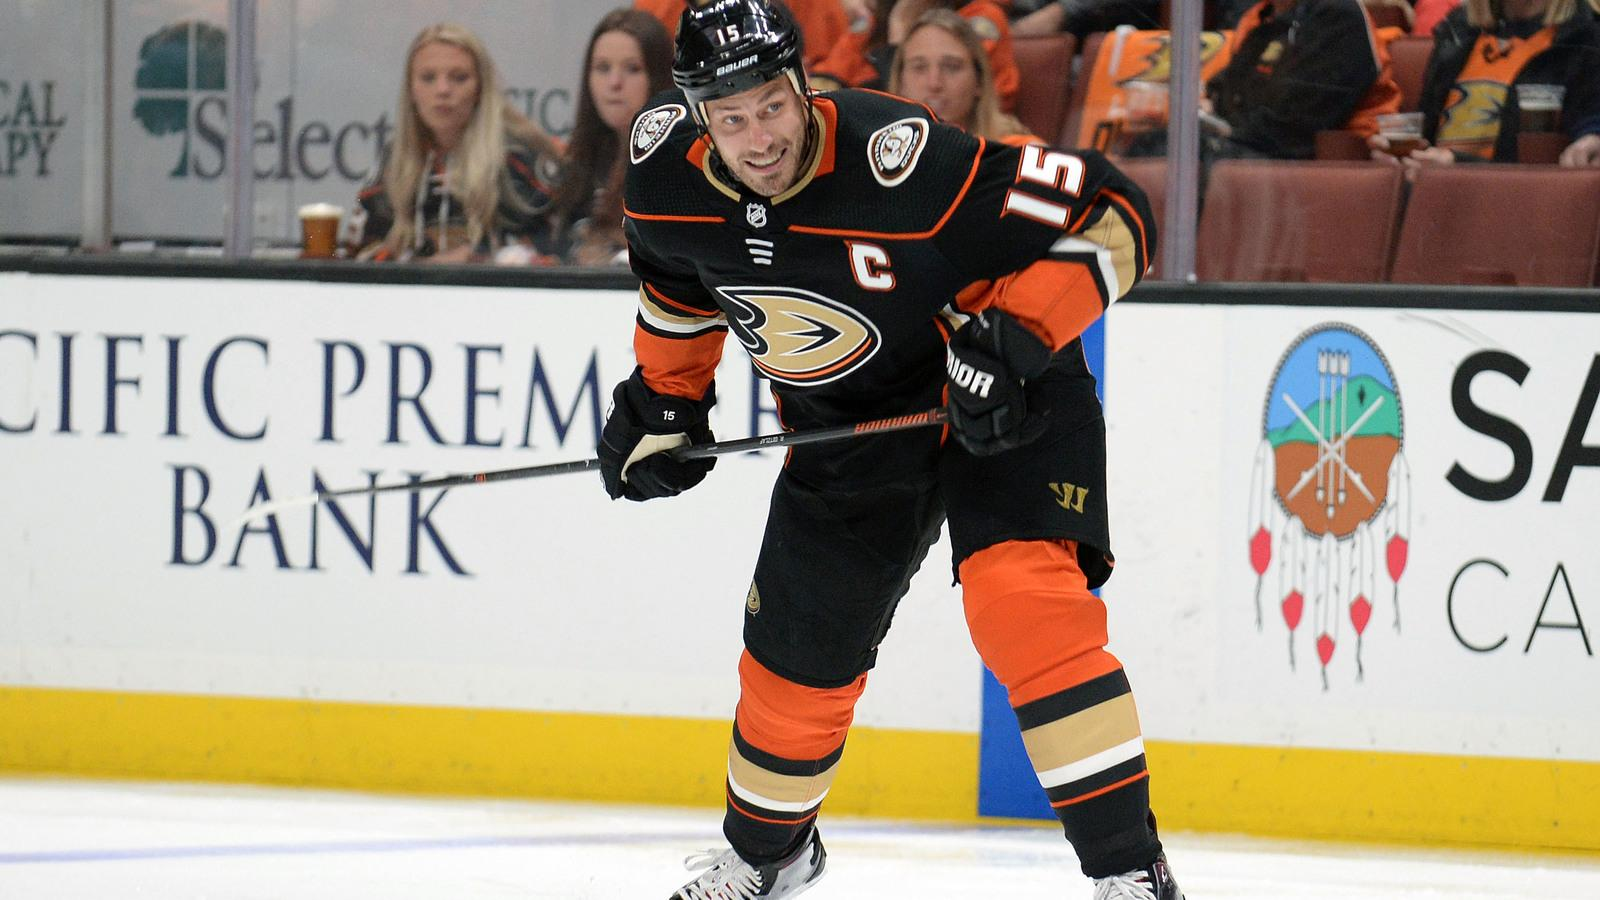 Watch: Ducks' Ryan Getzlaf takes puck to face, returns to game